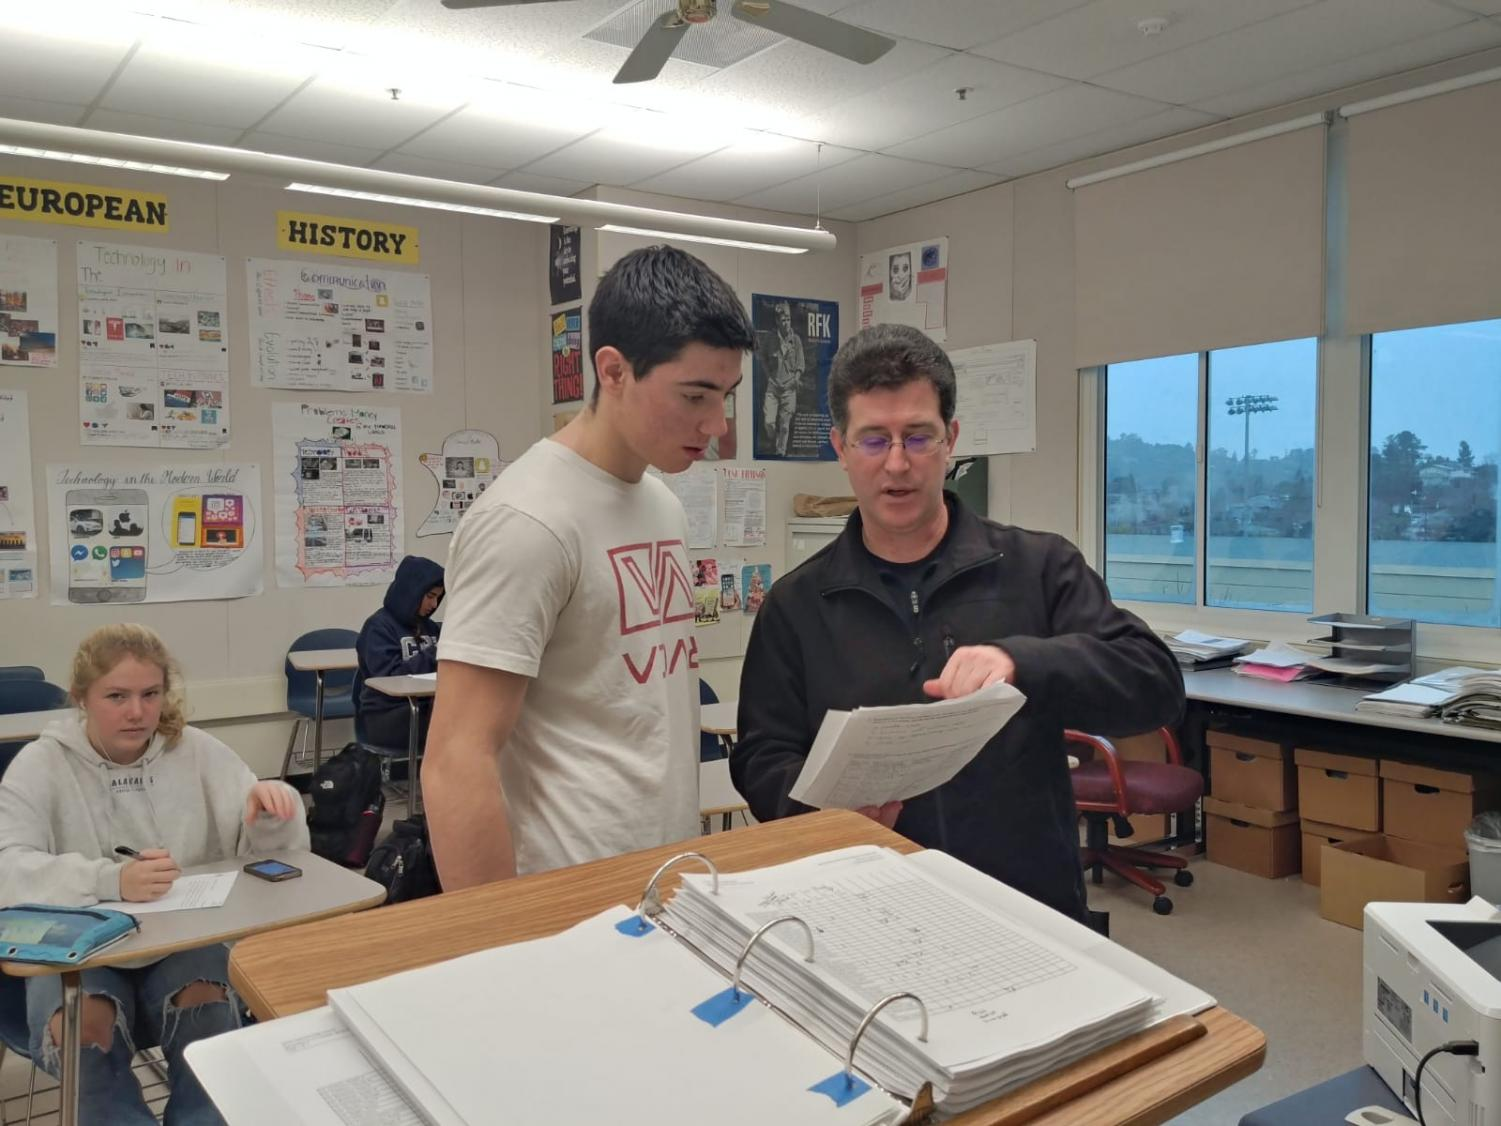 History teacher David Braunstein helps a student with a homework assignment during the Flex period.